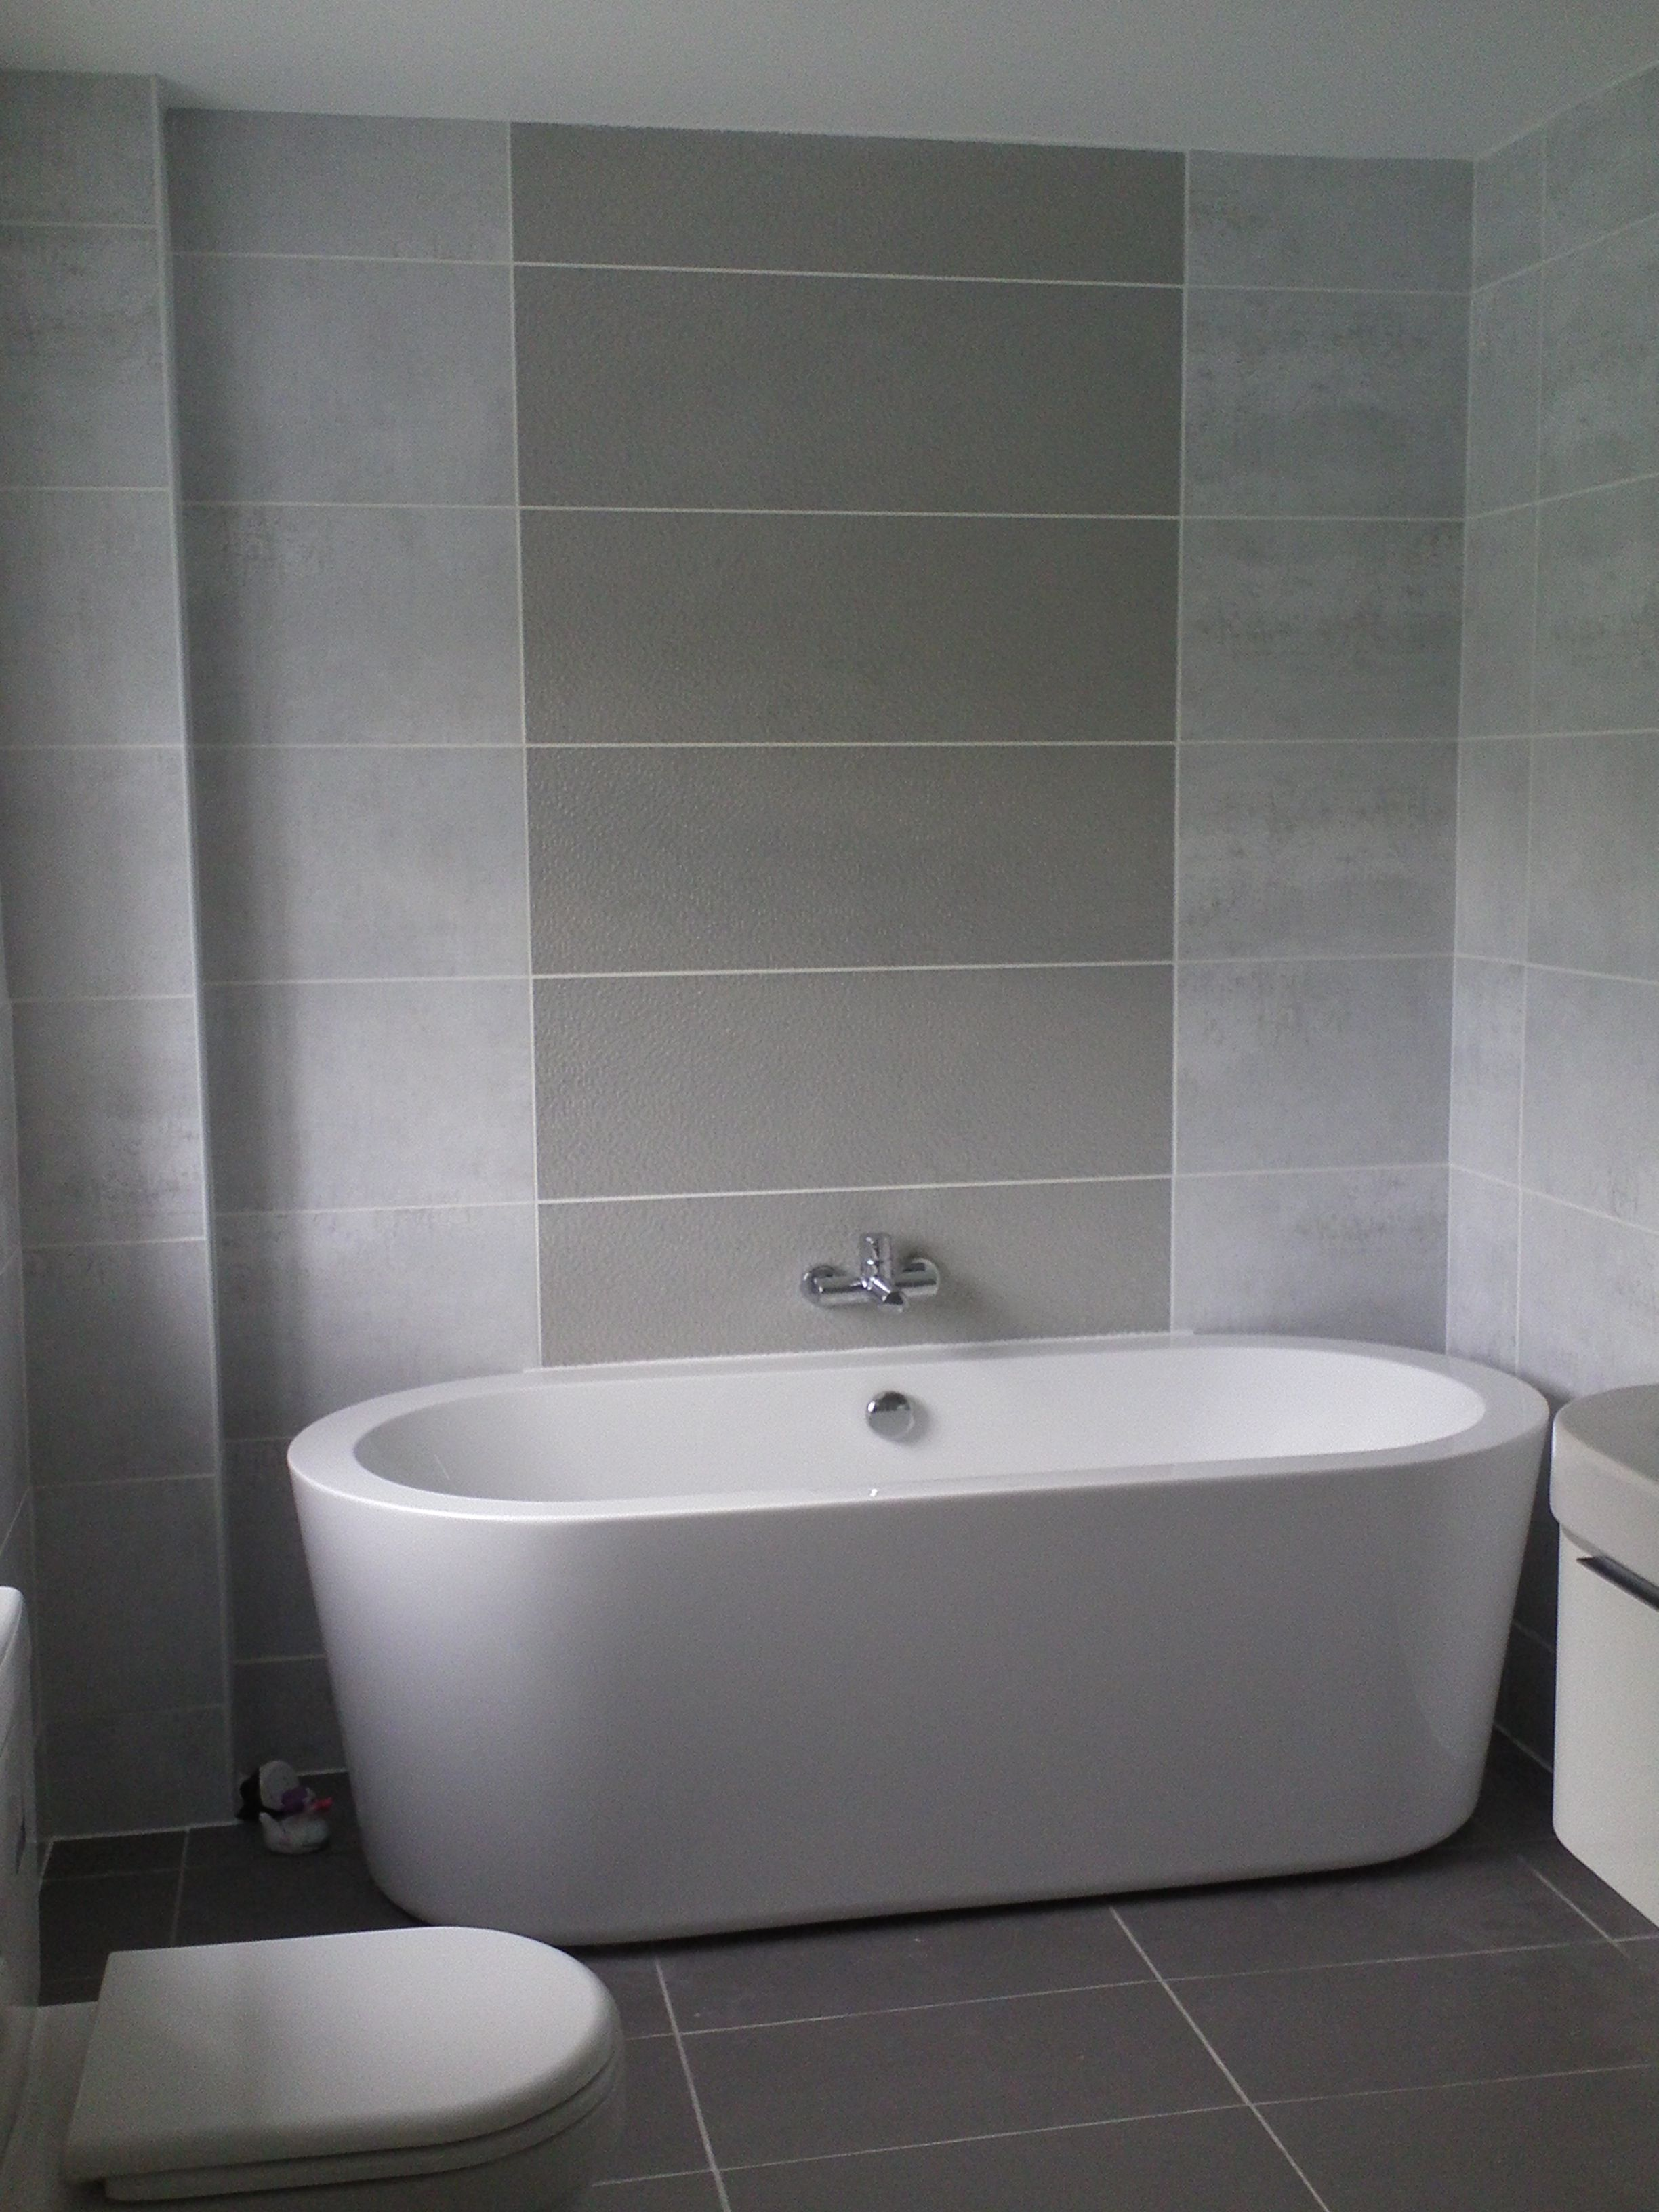 Inspiring Small Bathroom Color Ideas With Grey Wall Tiled As Well As Simple Refresh The